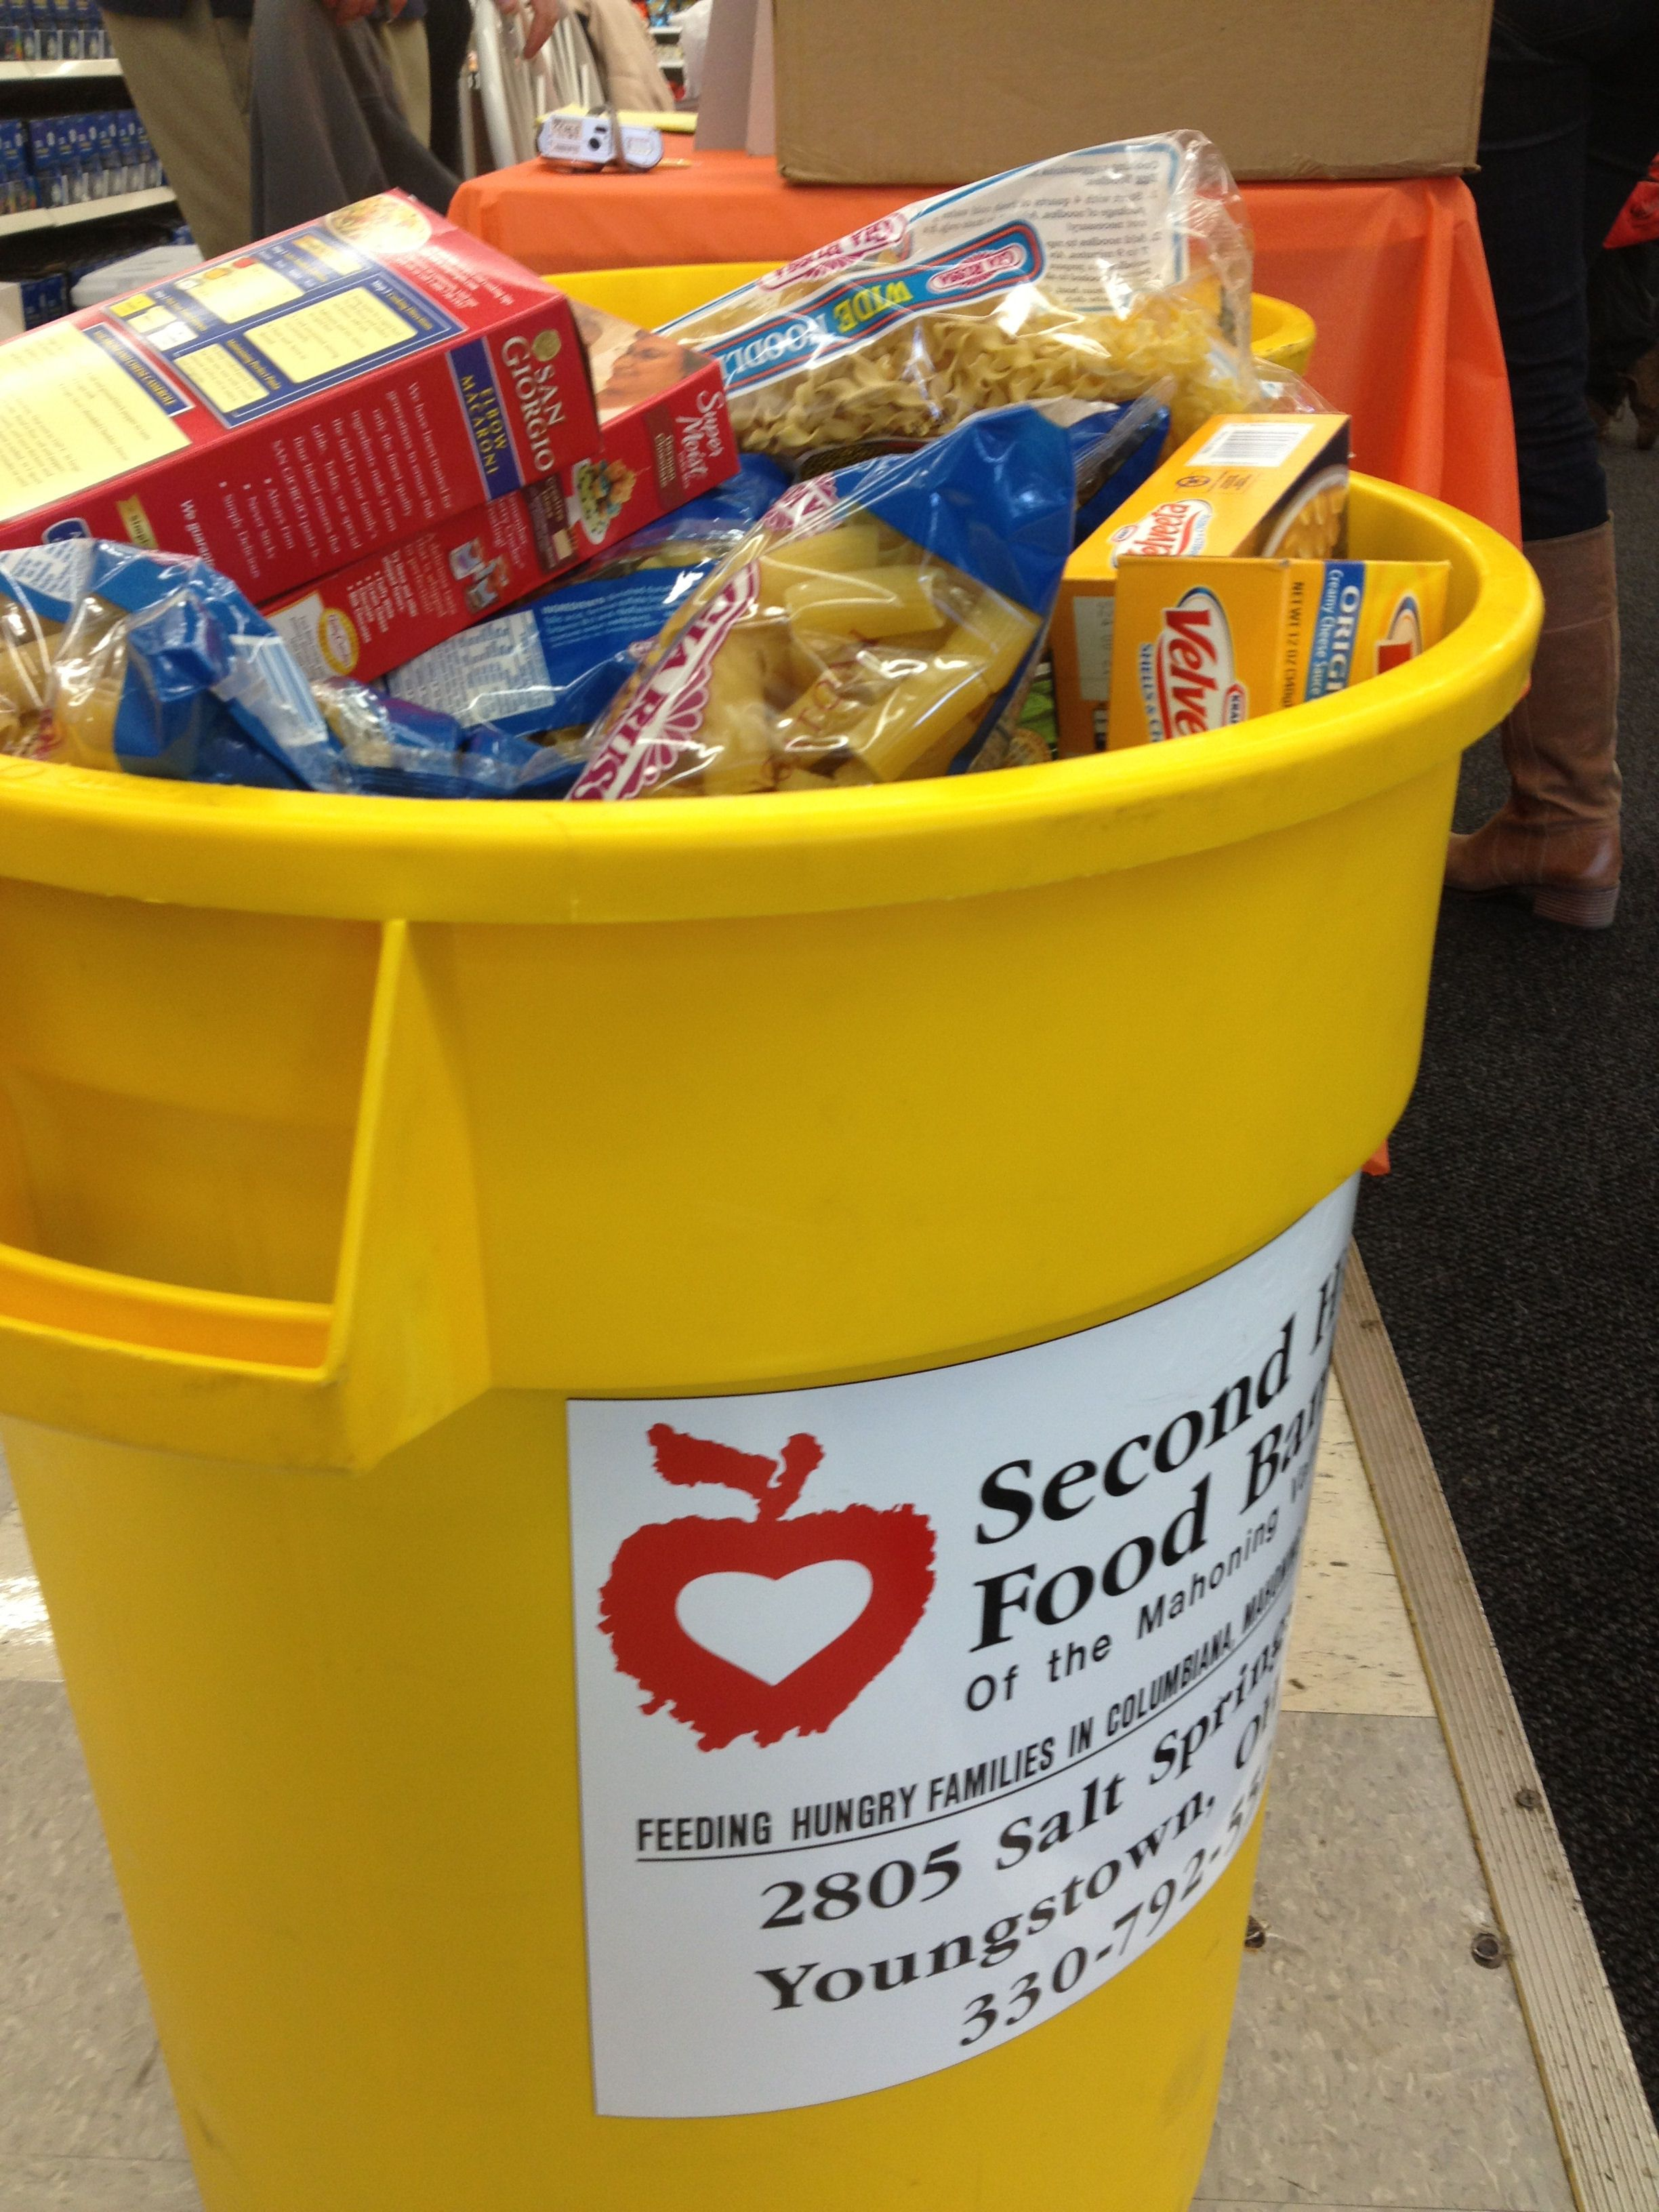 At the end of the day, we collected over 1,000 food items at our Project: Feed Our Valley food drive at the Kmart Super Center in Niles, OH.